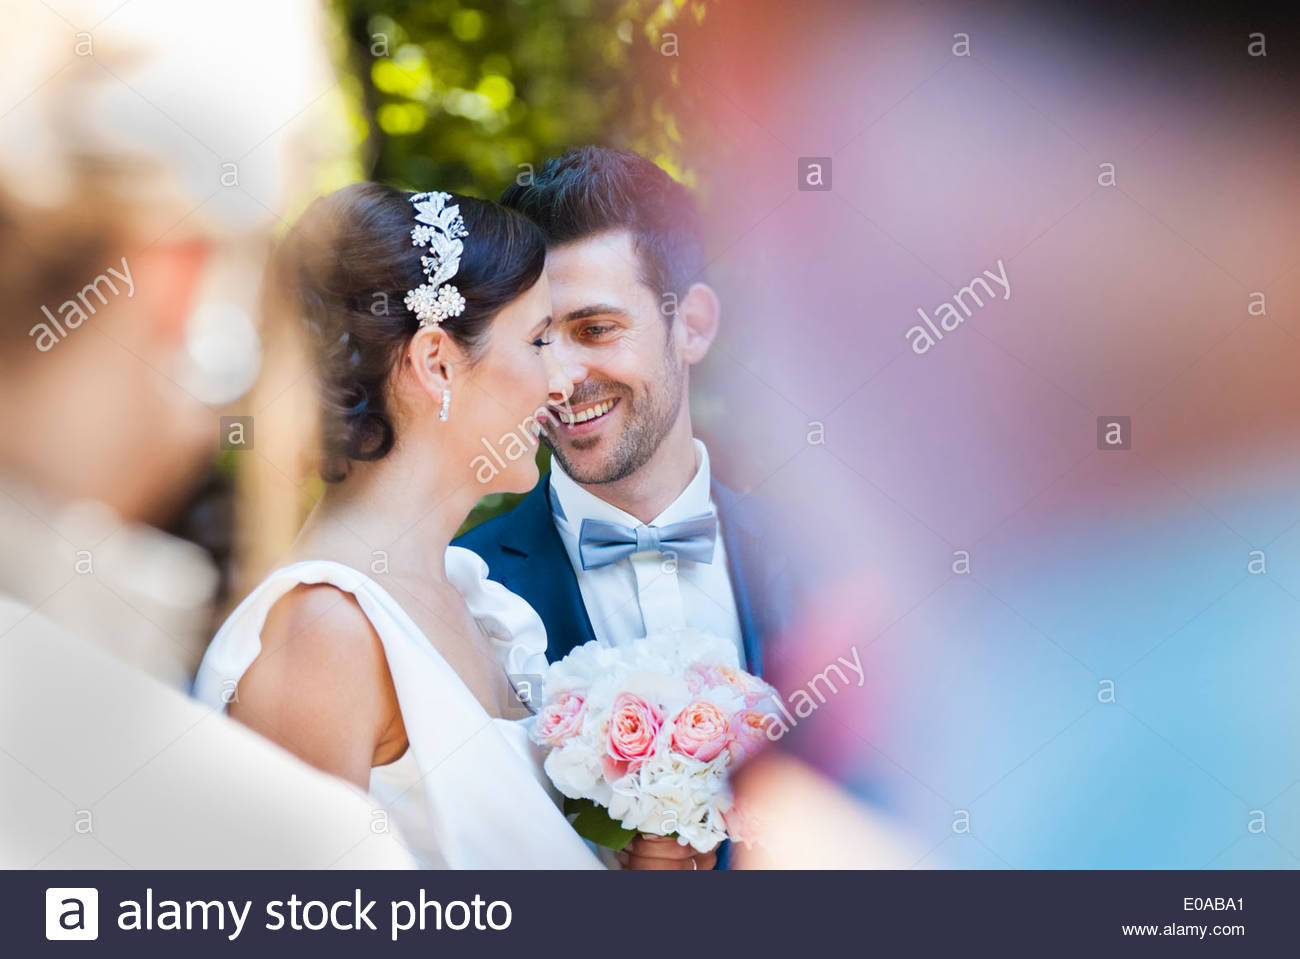 Mid adult bride and groom surrounded by wedding guests - Stock Image